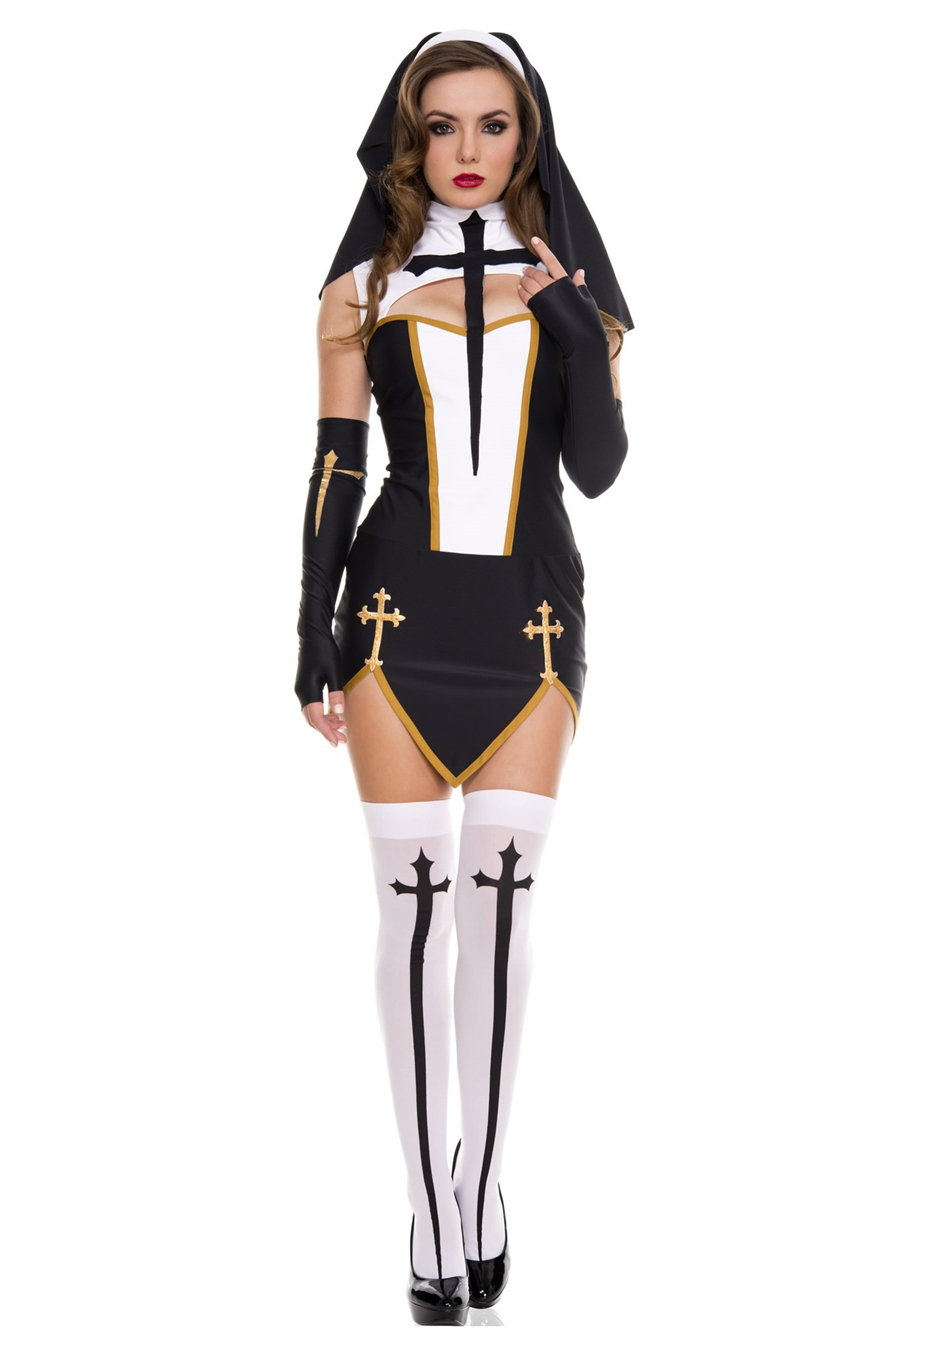 Medieval Cosplay Halloween Costumes for Women Priest Nun Missionary Costume Set 13